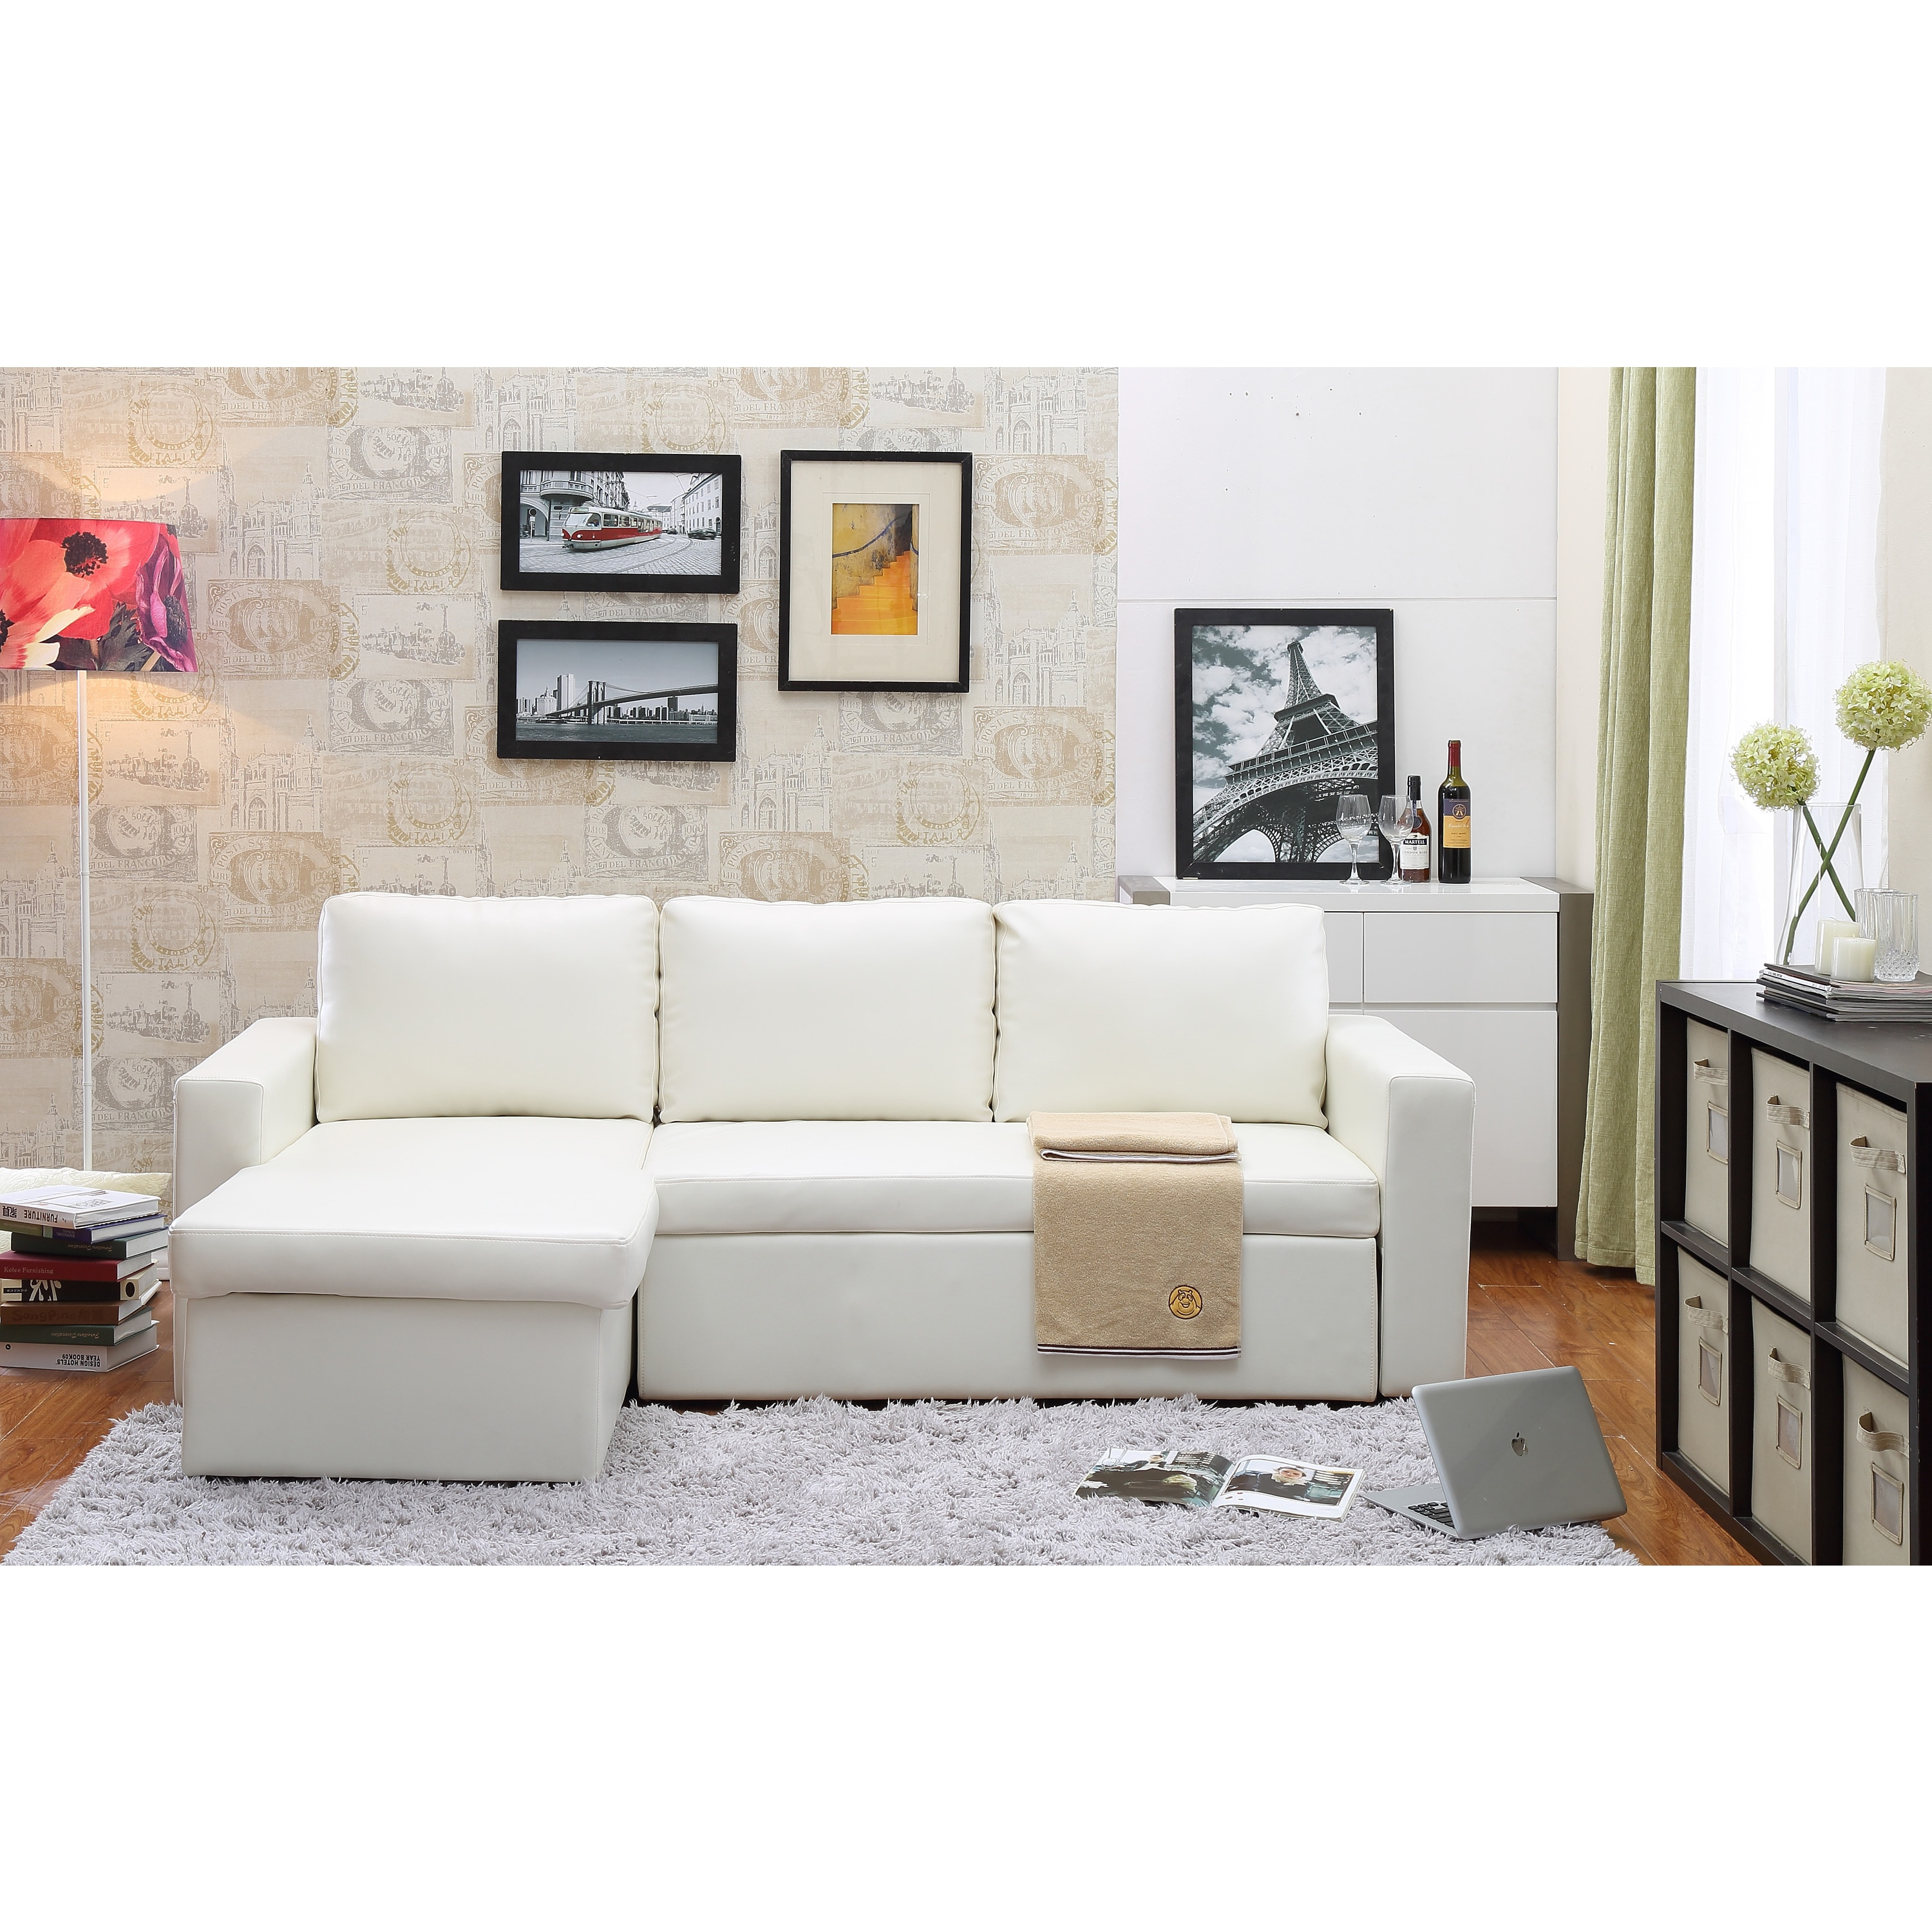 White Leather Sectional Sofa Bed: The-Hom Georgetown 2-piece White Bi-cast Leather Sectional